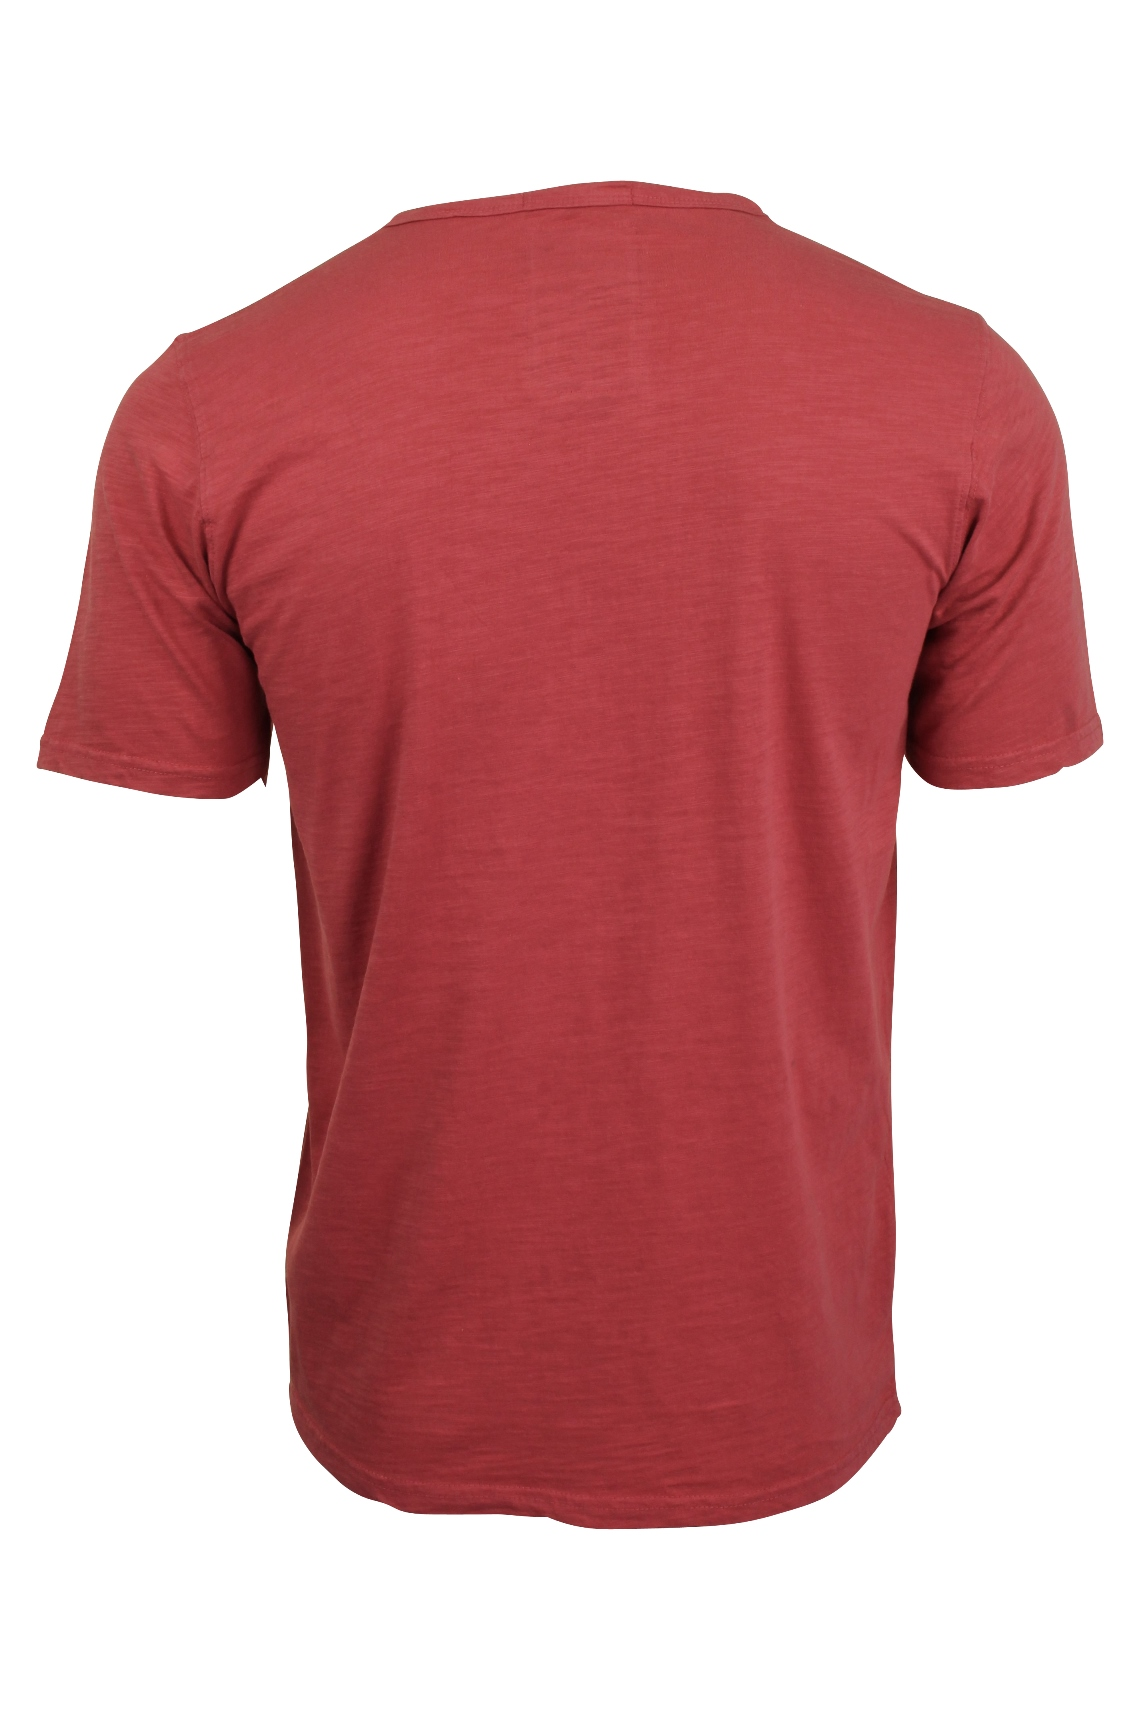 Mens-Grandad-T-Shirt-by-Tokyo-Laundry-039-Barry-039-Short-Sleeved thumbnail 11